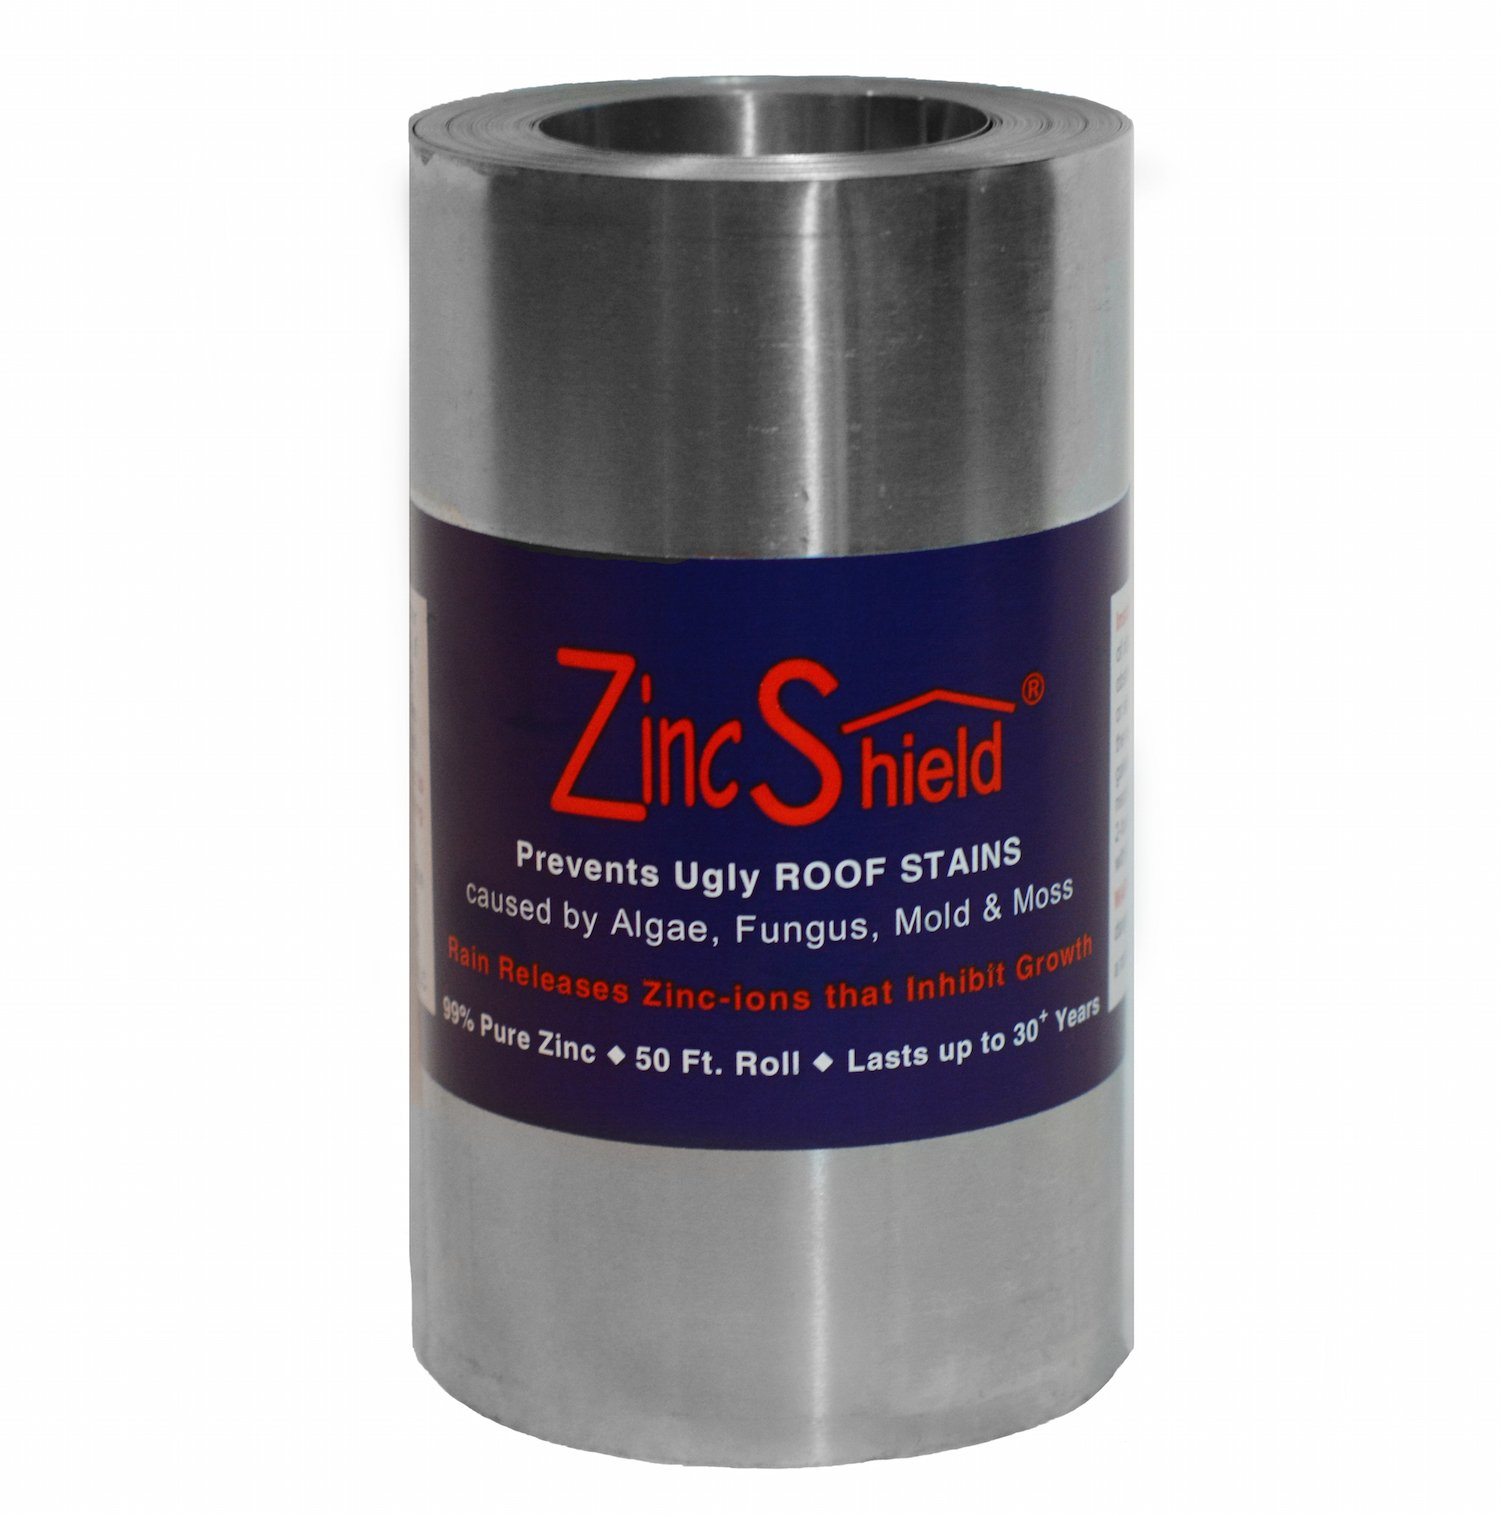 Set of 2 - ZincShield Pure Zinc Strips and Nails Installation Kit to Avoid Ugly Roof Stains from Moss, Algae, Fungus, and Mildew (6'' Roll + Nails (2 Sets)) Made in the USA by ZincShield (Image #1)